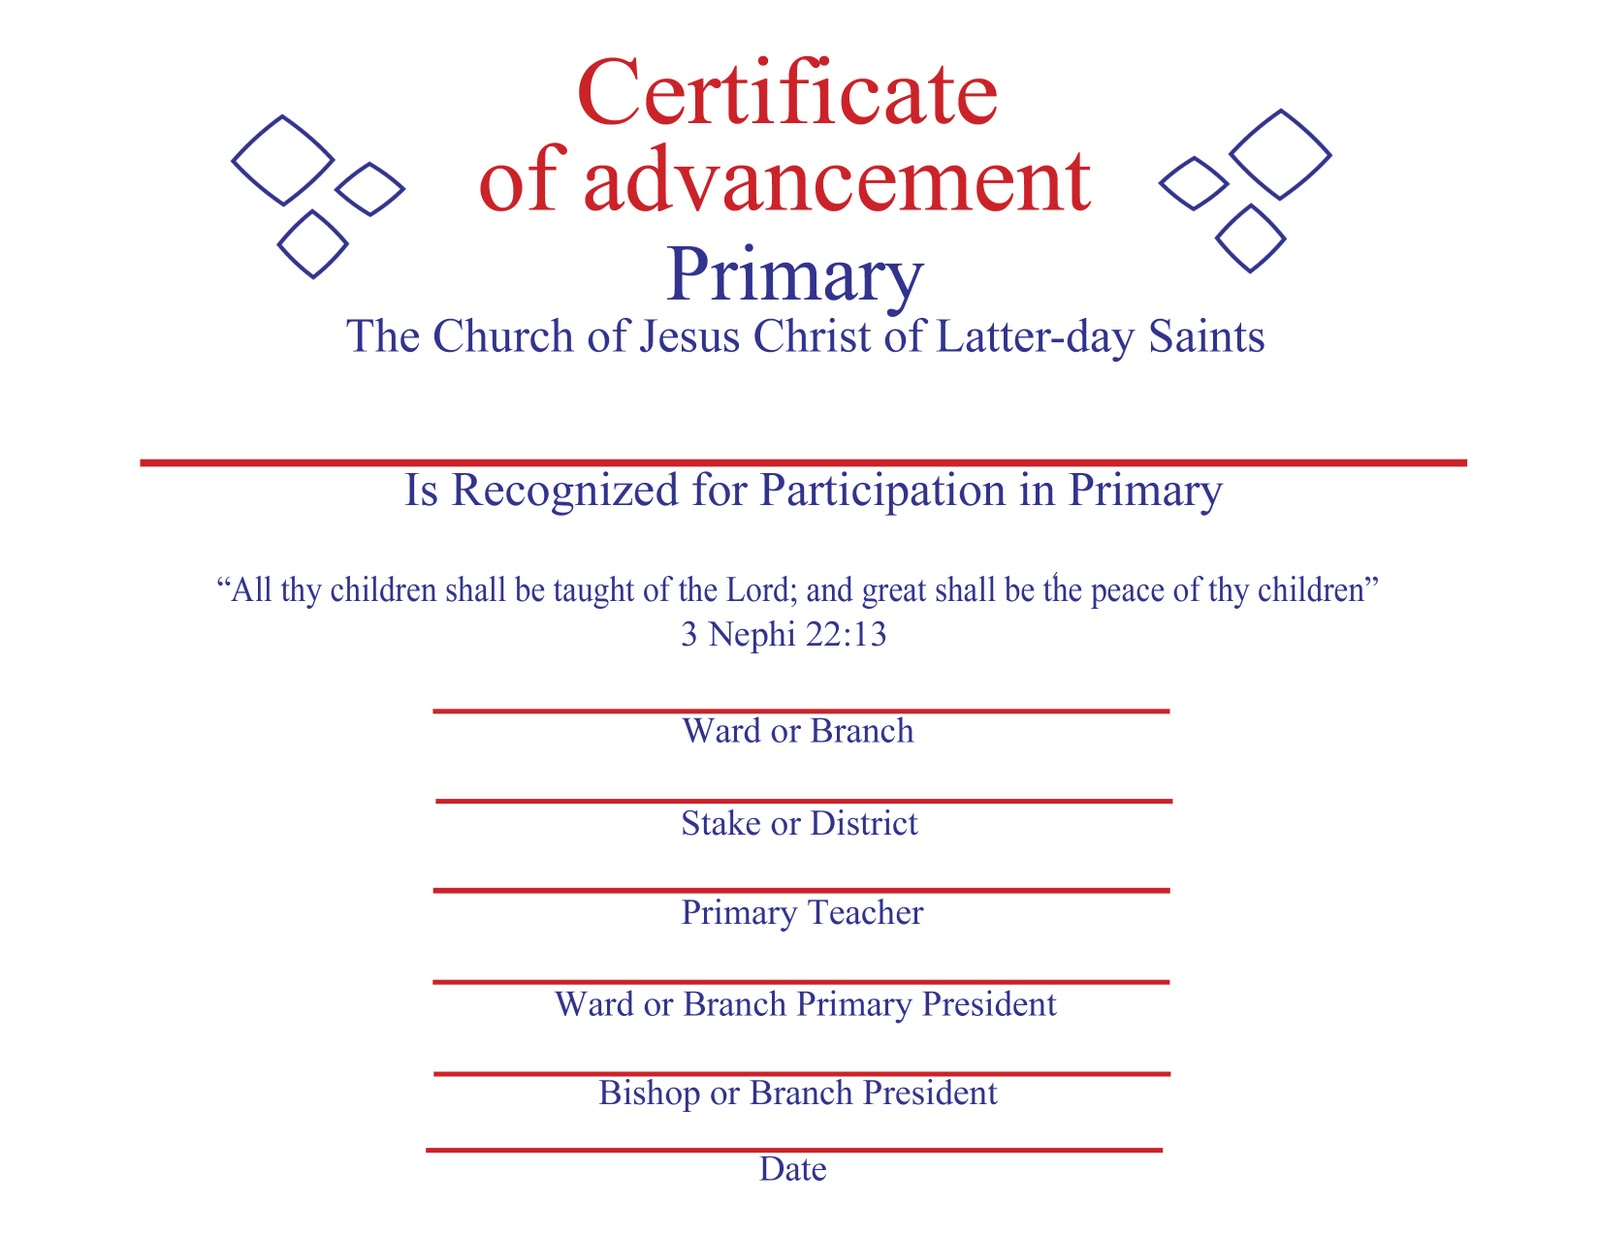 LDS Primary Advancement Certificate Printable